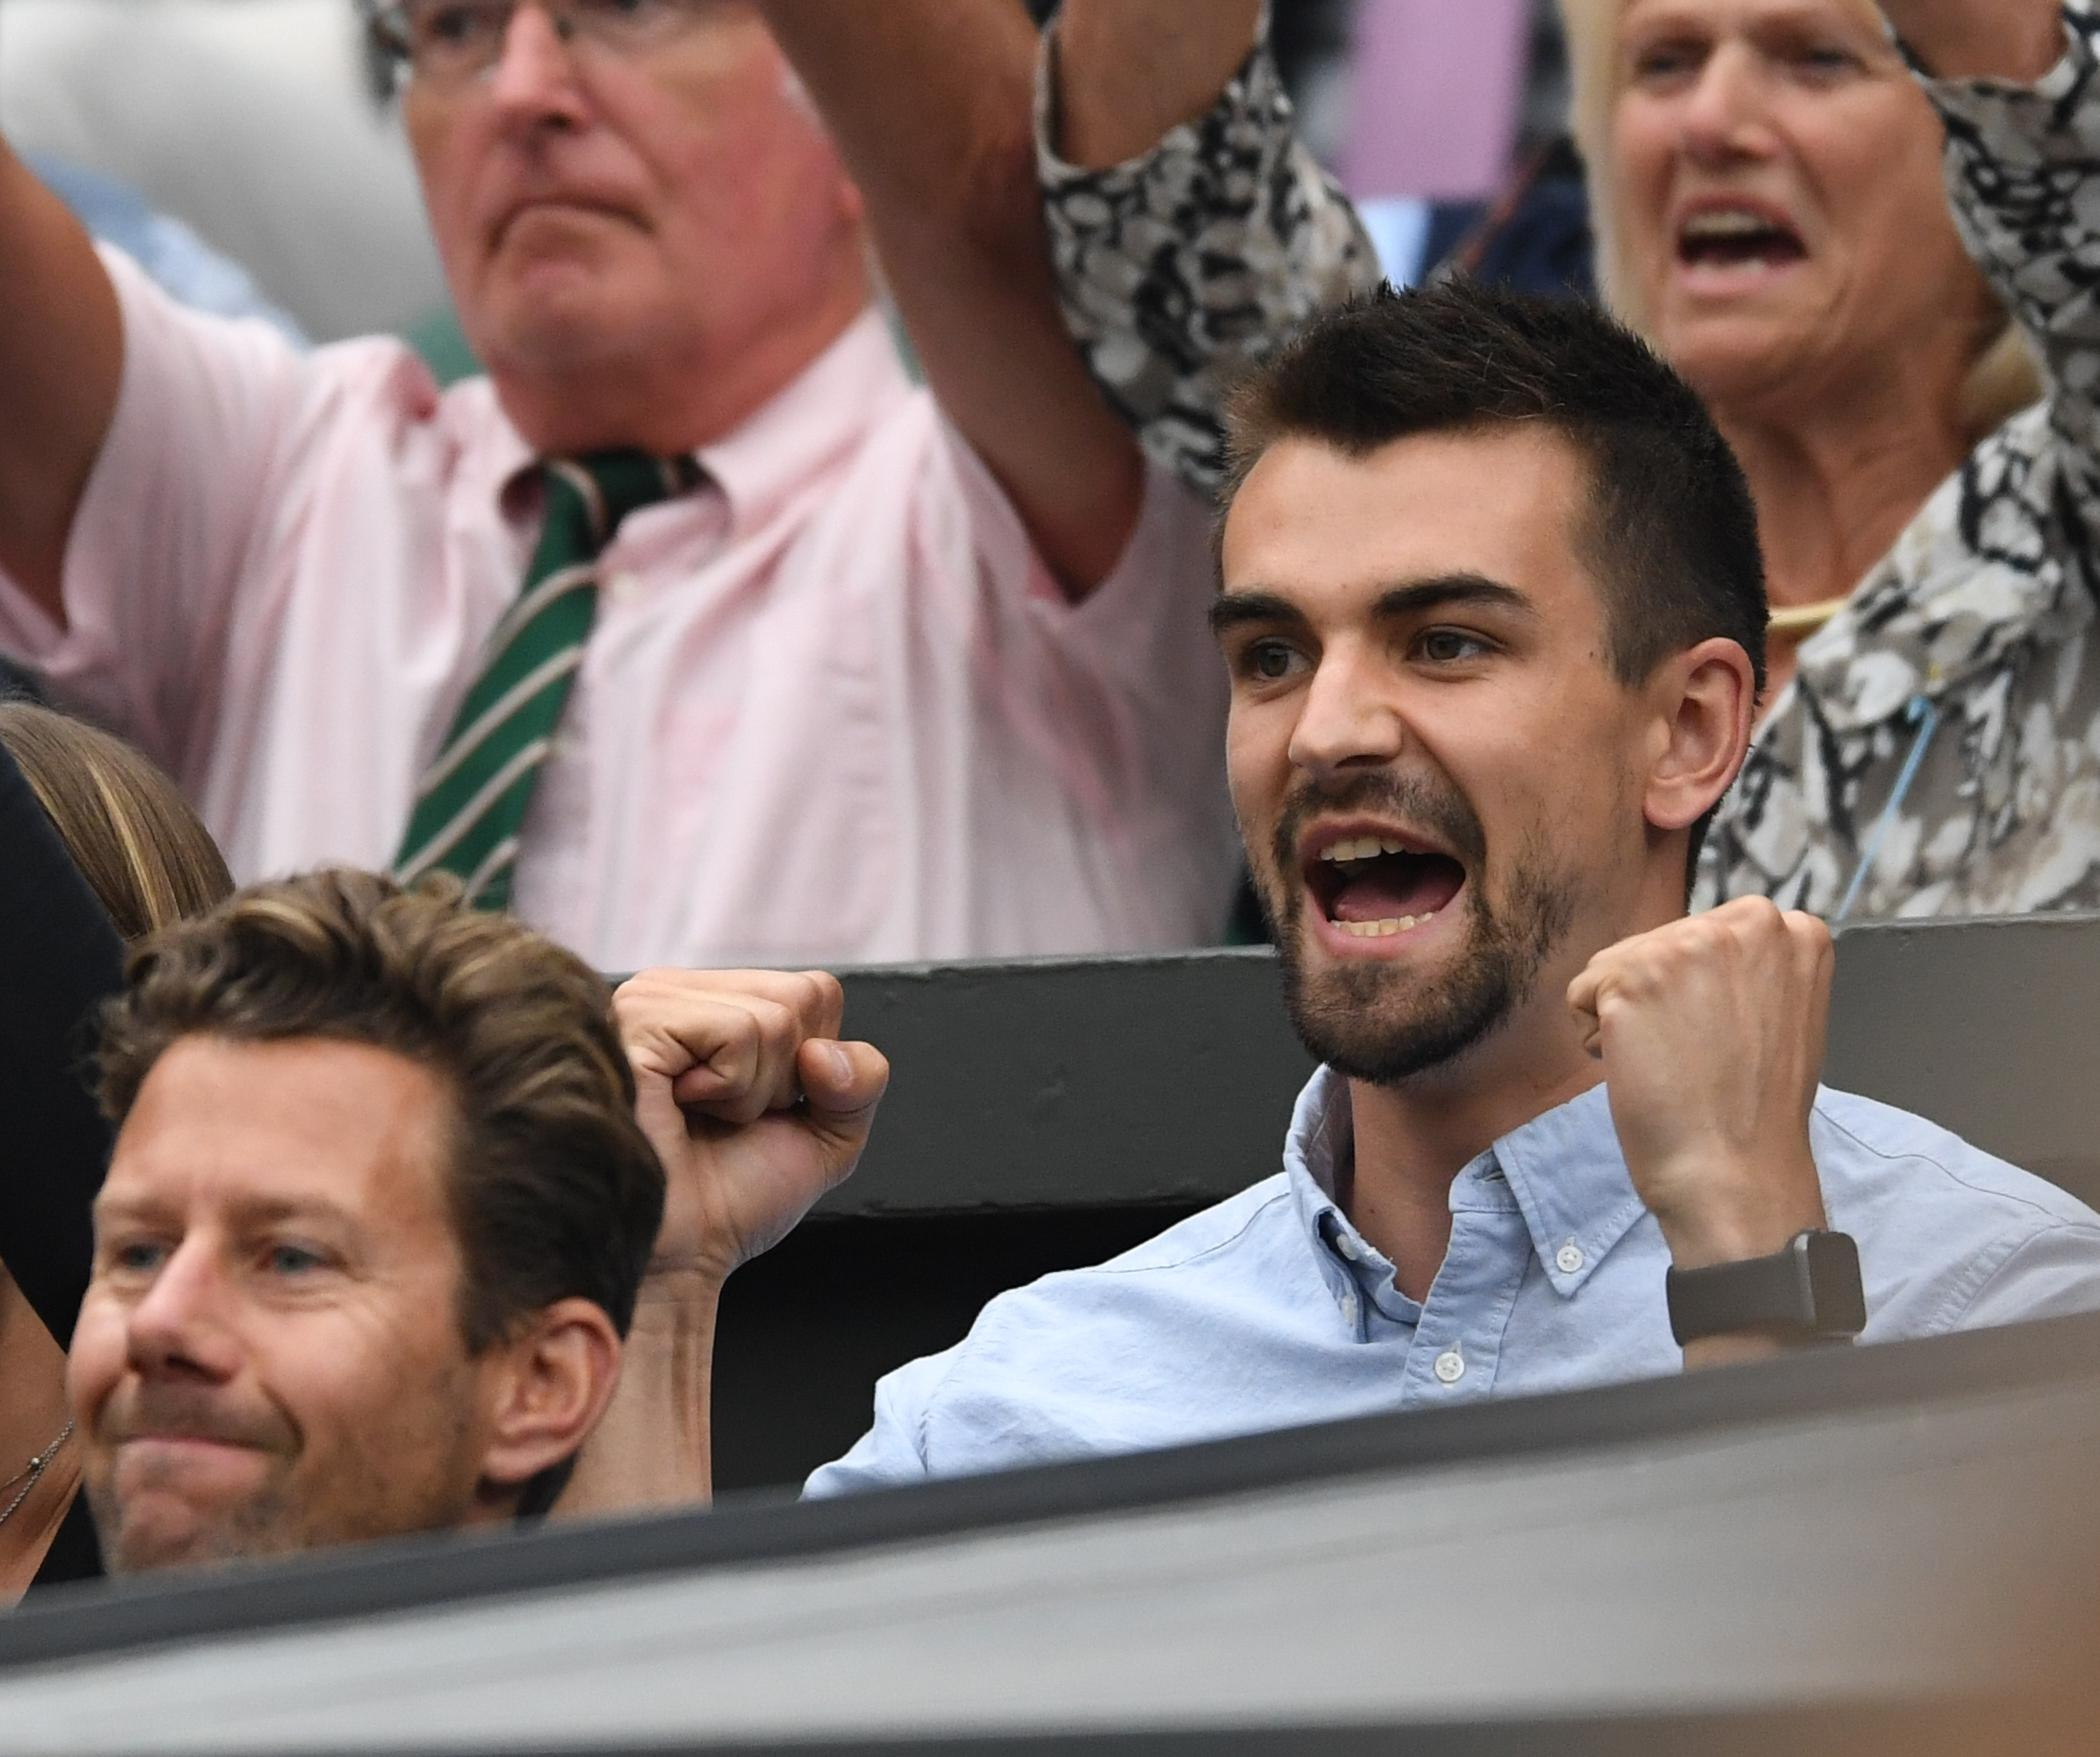 Jackson Wade cheers on his girlfriend against Simona Halep